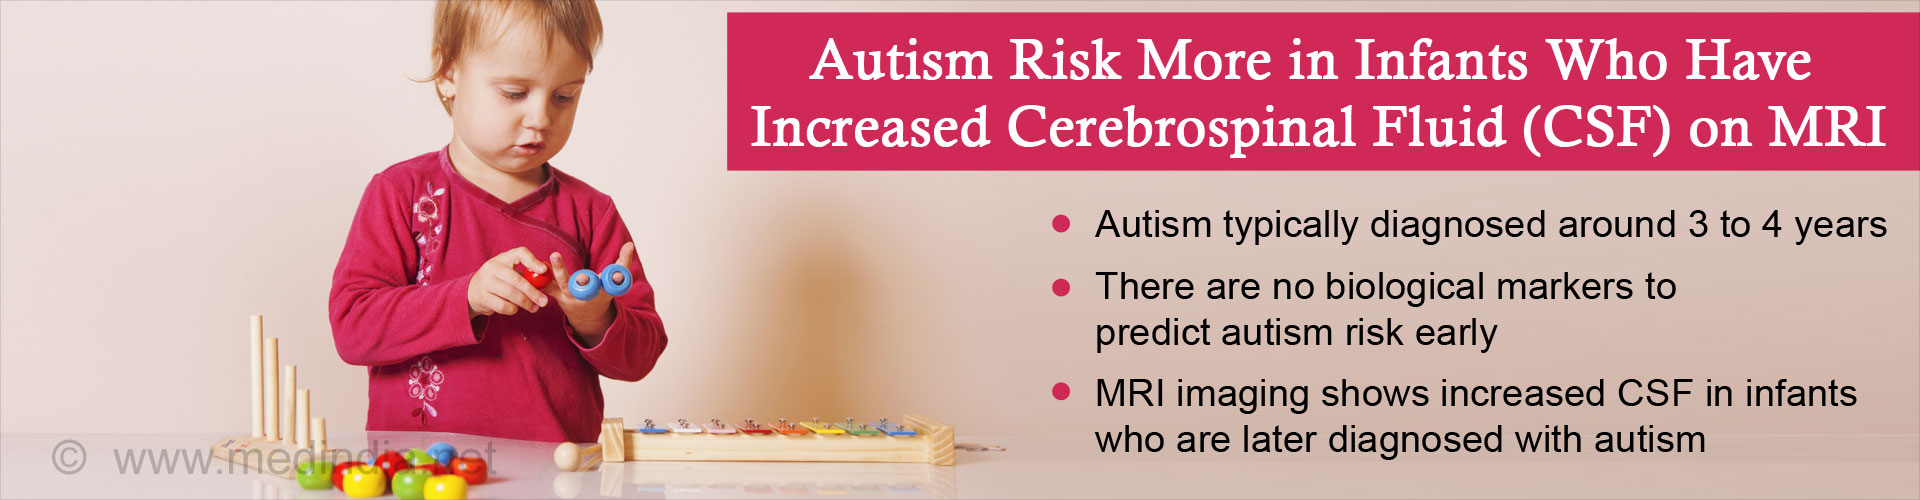 Increased Cerebrospinal Fluid on Infant MRI�s Might Be A Predictor of Autism